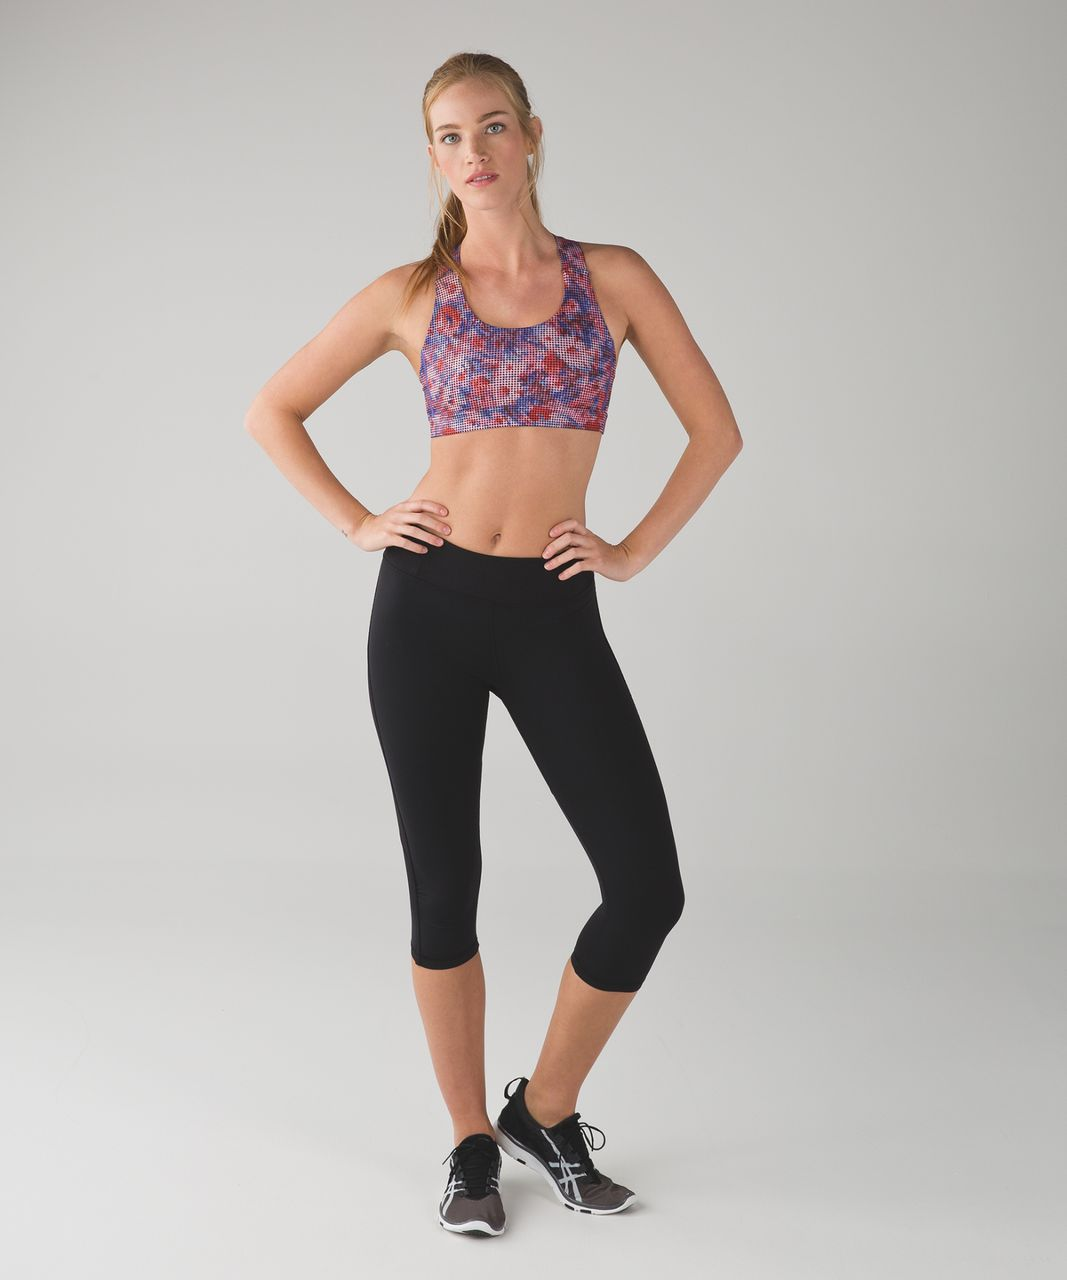 Lululemon All Sport Bra III - Checker Blooms Multi